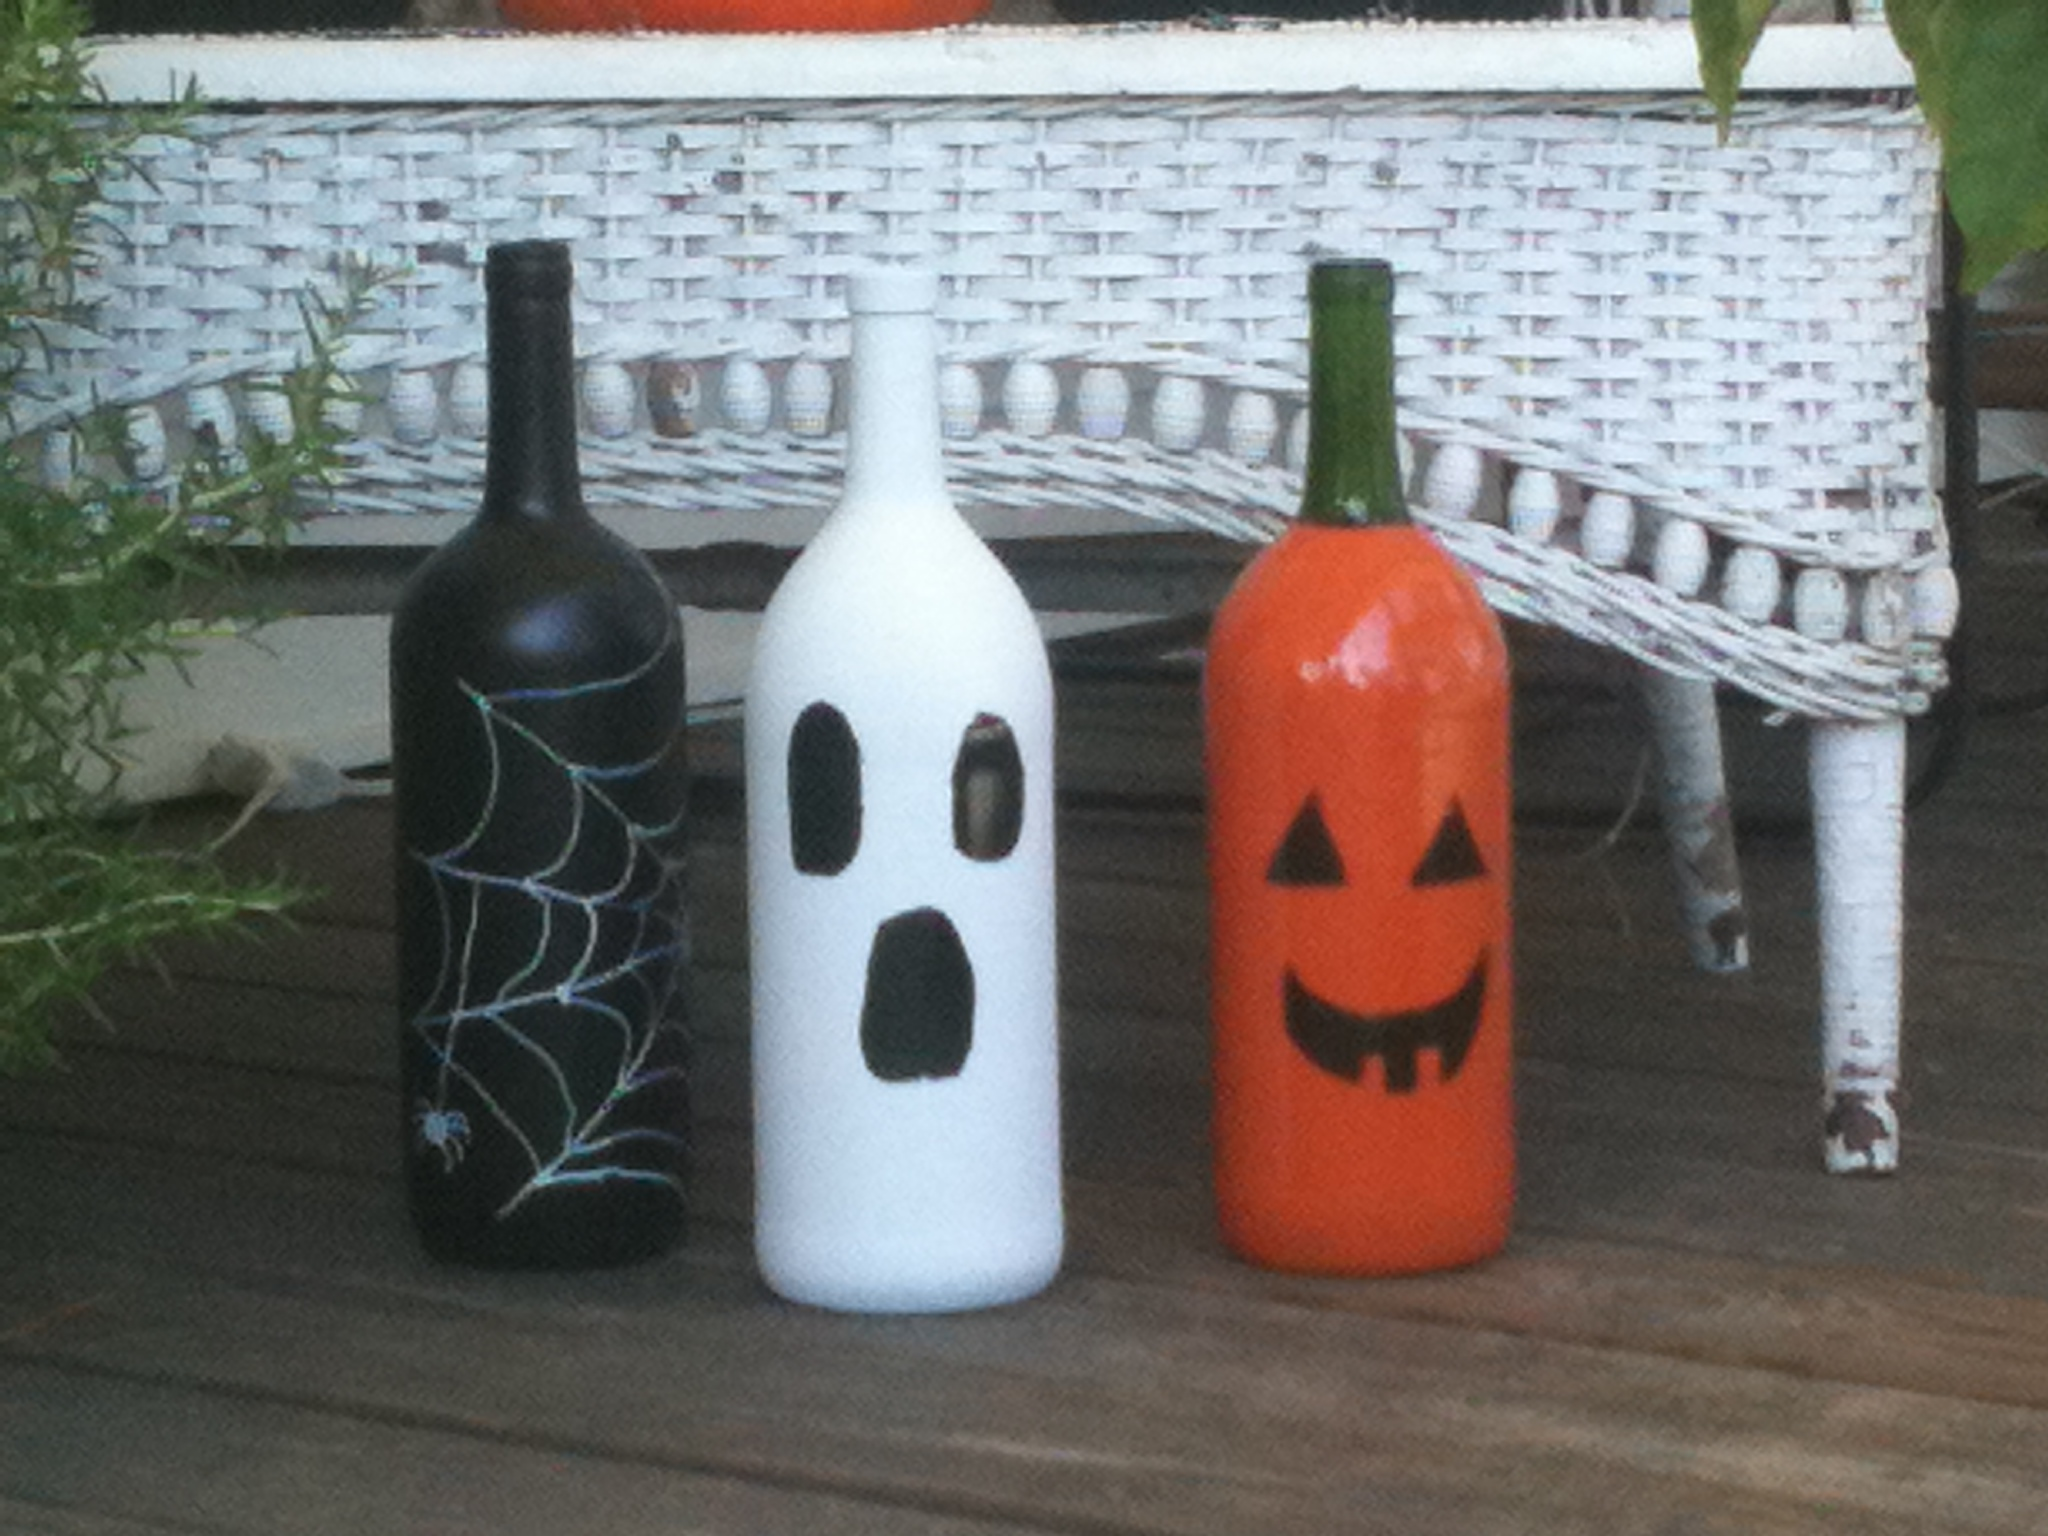 diy halloween decorations - Halloween Decorations Idea